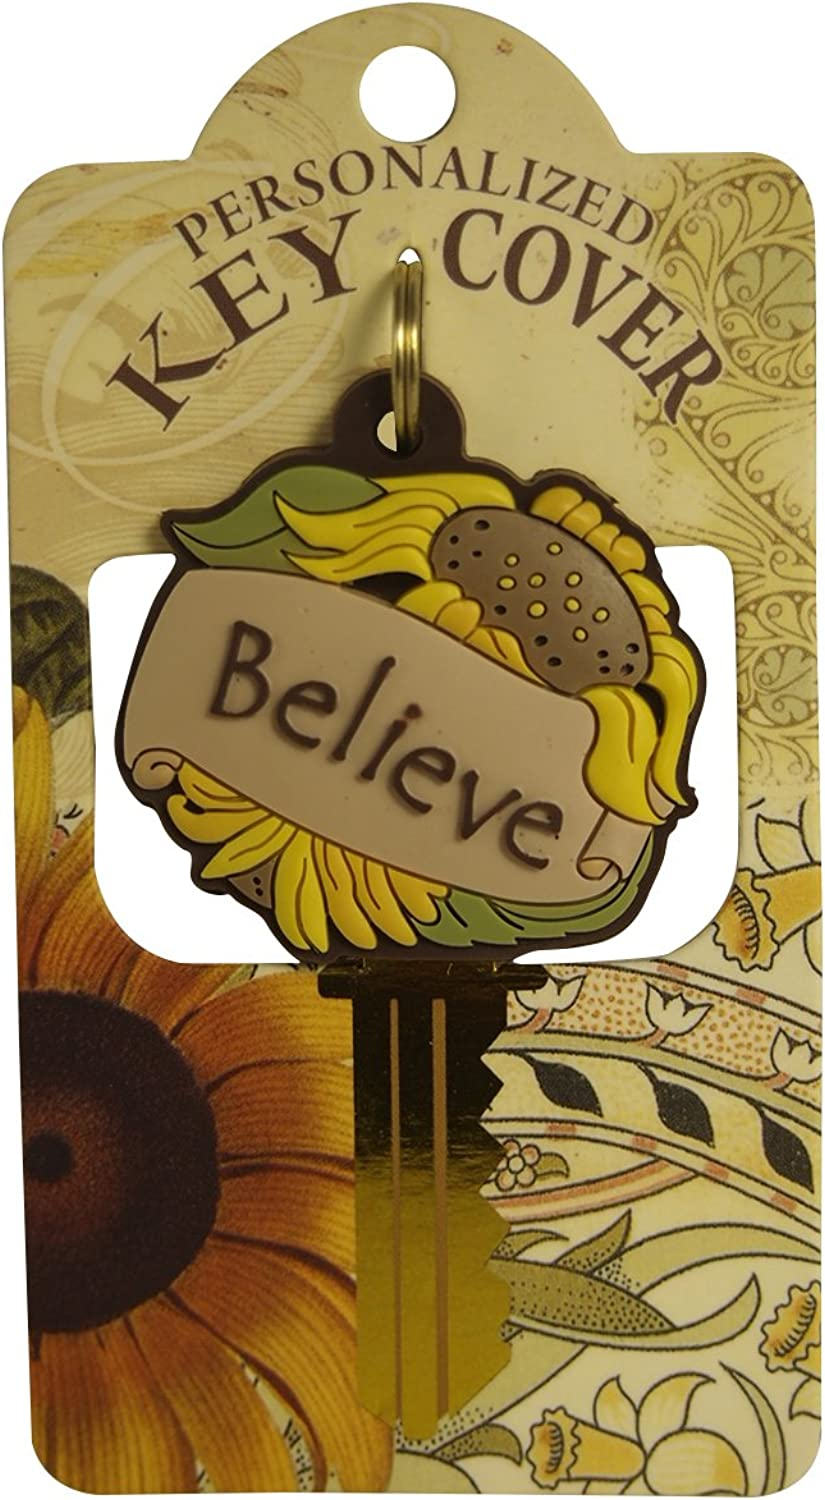 Personalized Key Covers, Key Hook, Believe (421530032)